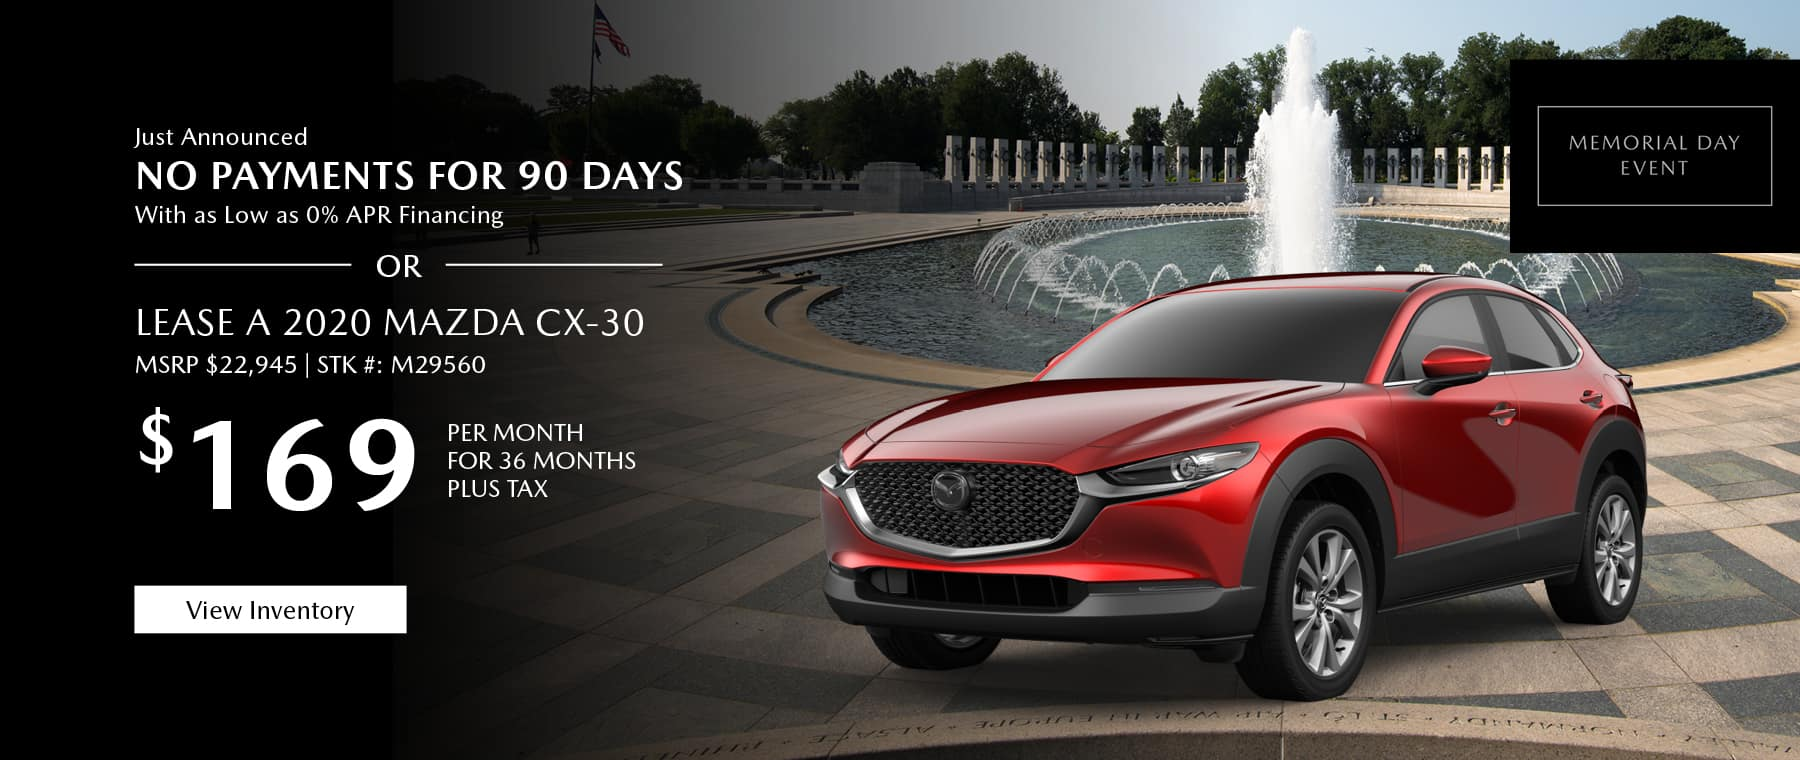 Just Announced, No payments for 90 days with as low as %0 APR financing, or lease the 2020 Mazda CX-30 for $169 per month, plus tax. Gunther will waive your first 2 lease payments. View inventory.